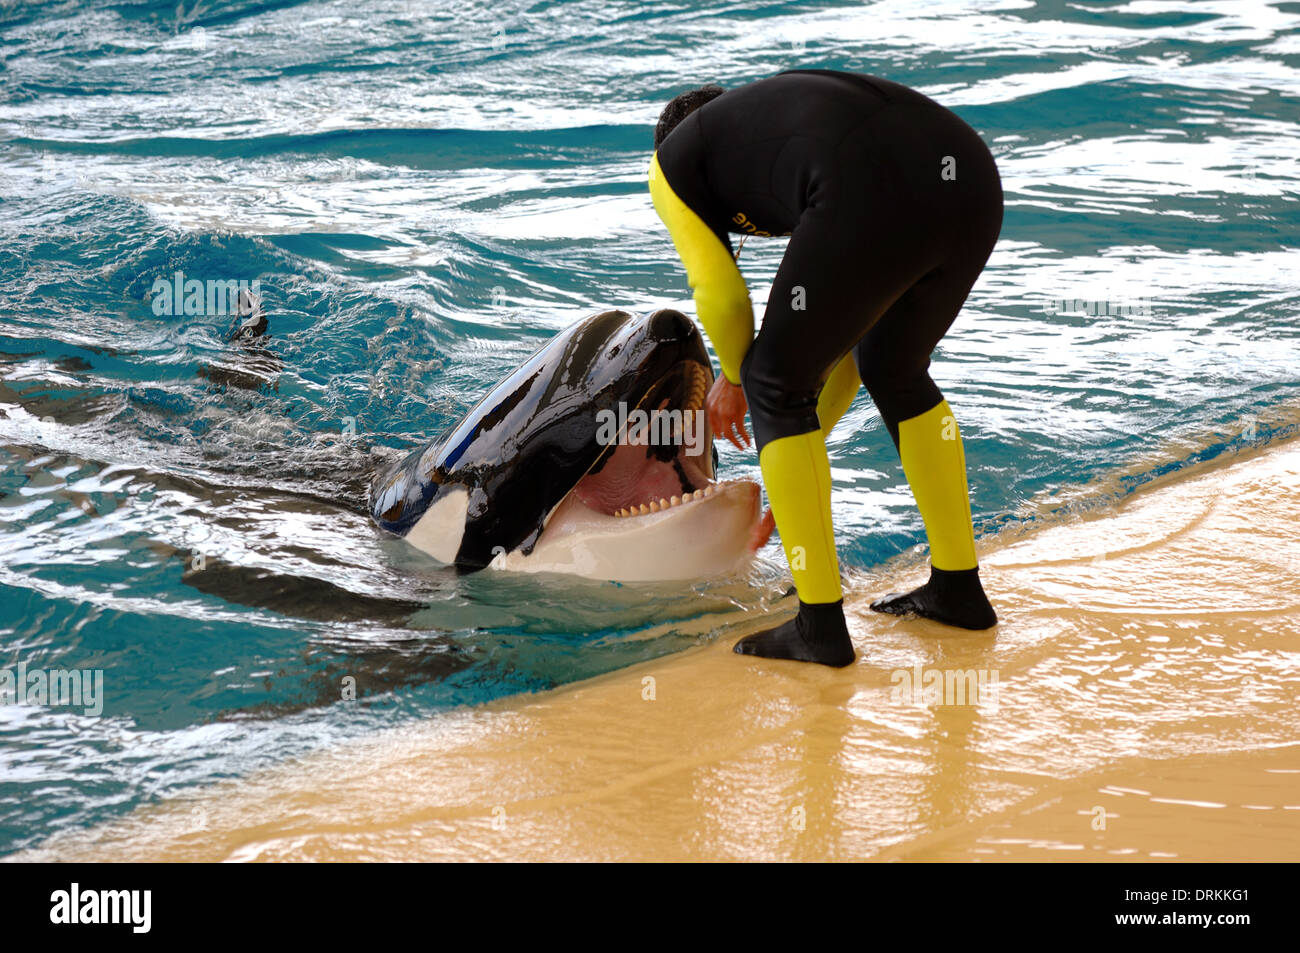 Man and killer whale by the water. - Stock Image